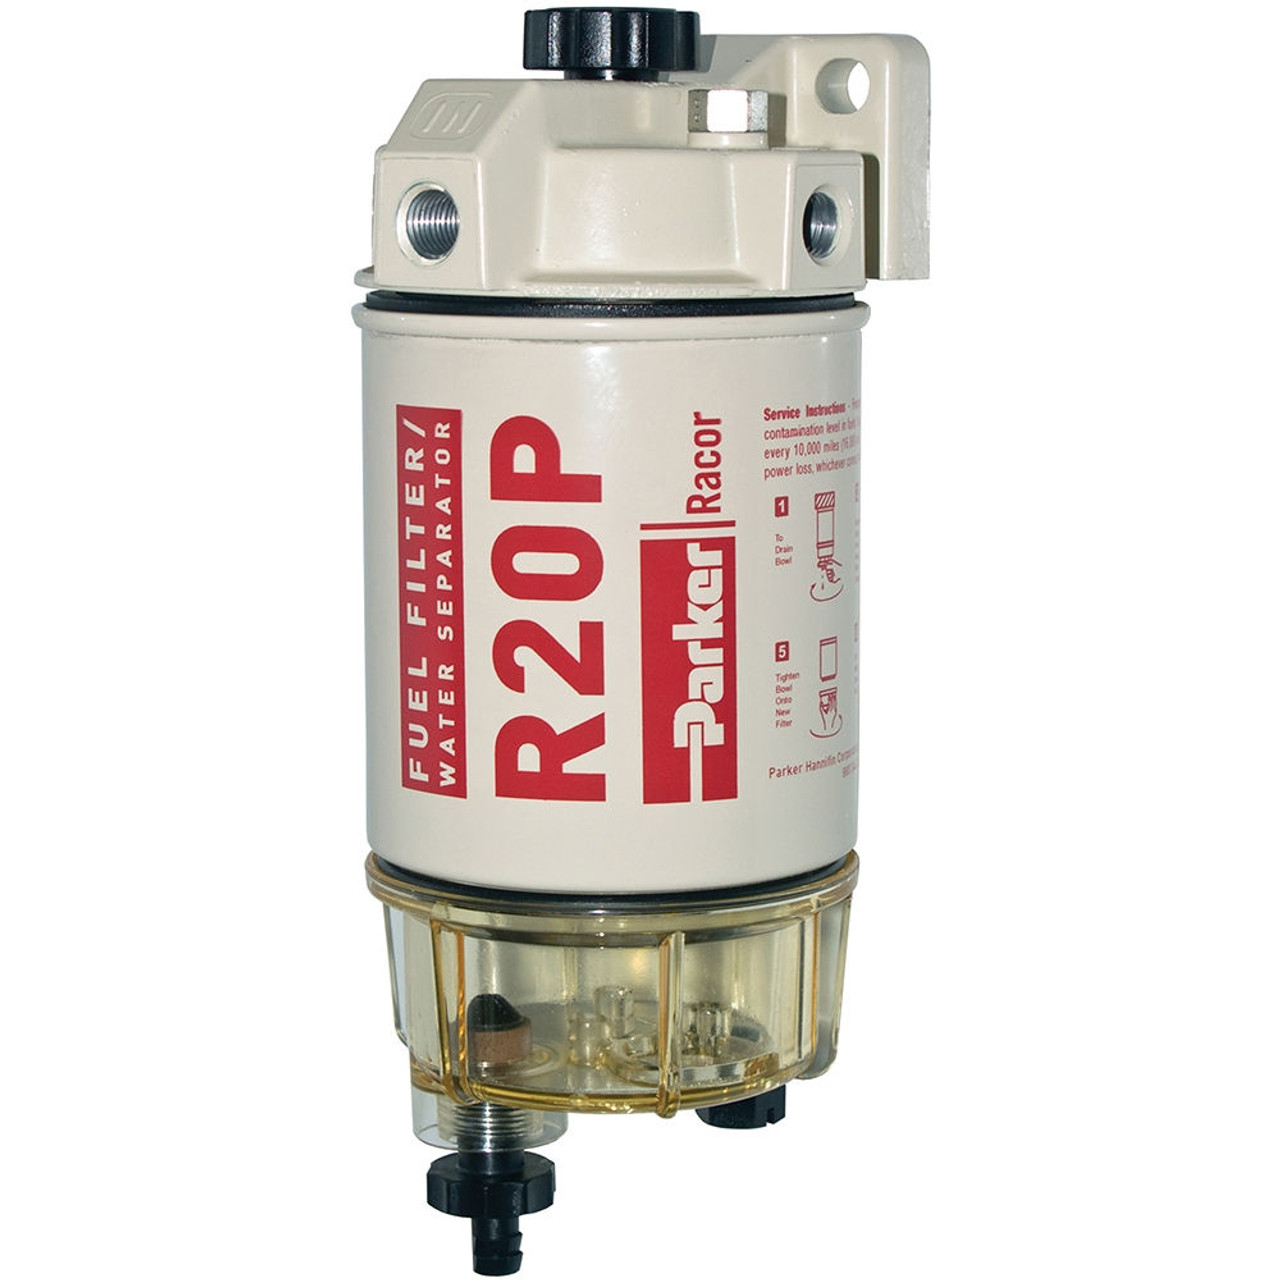 racor 200 series 30 gph low flow diesel fuel filter water separator Fuel Filters Racor Rk21069 For racor 200 series 30 gph low flow diesel fuel filter water separator 230 filter assembly